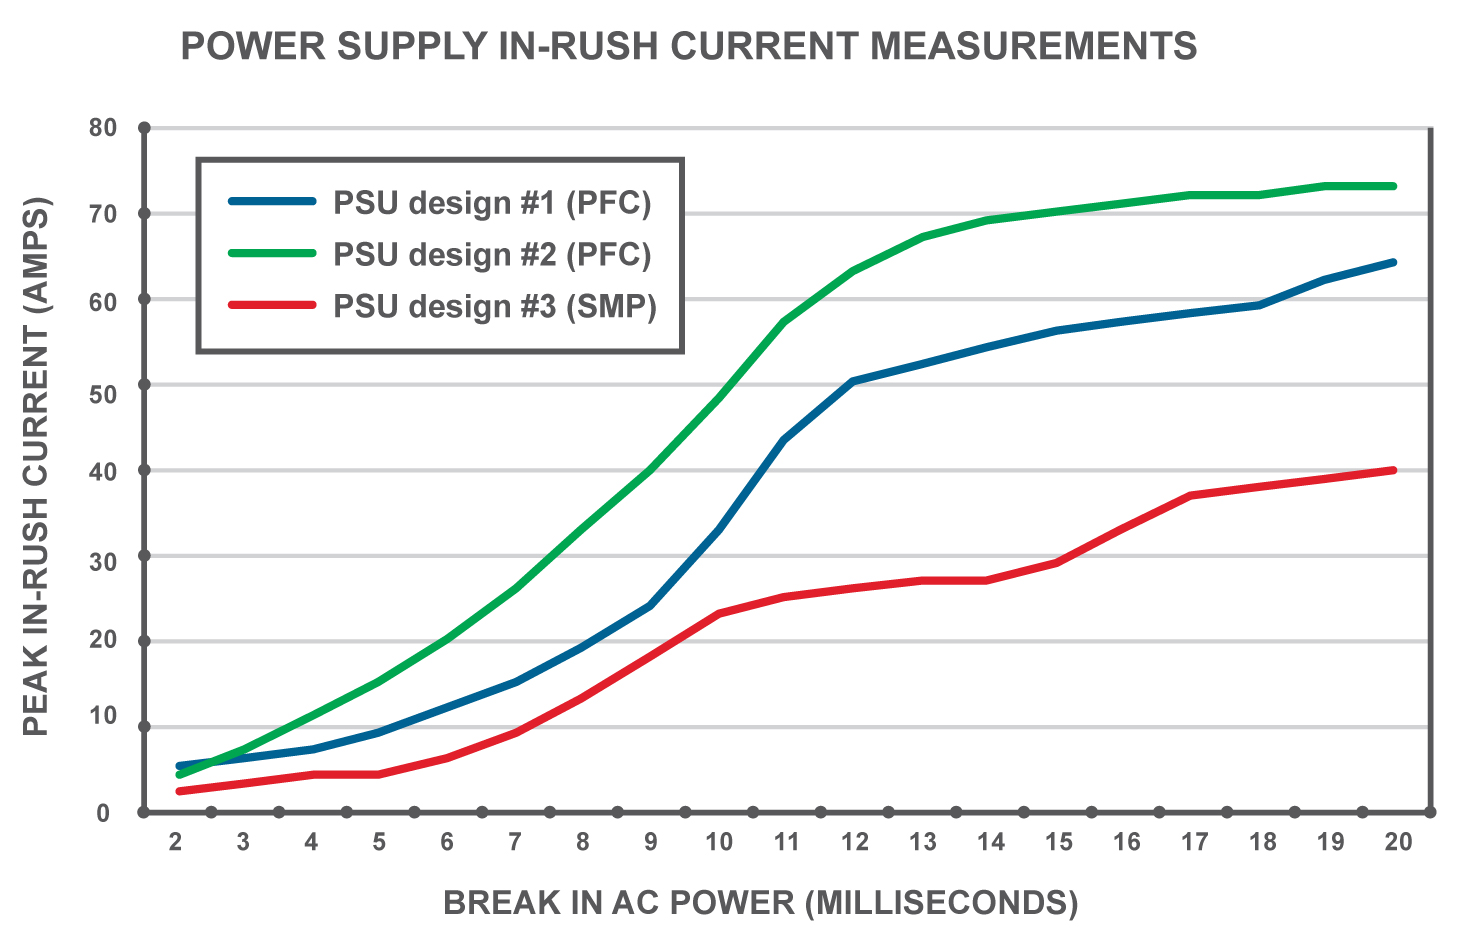 Figure 7. The longer the period of power loss, the higher the PSU in-rush current, but some PSU designs control this phenomenon better than others.